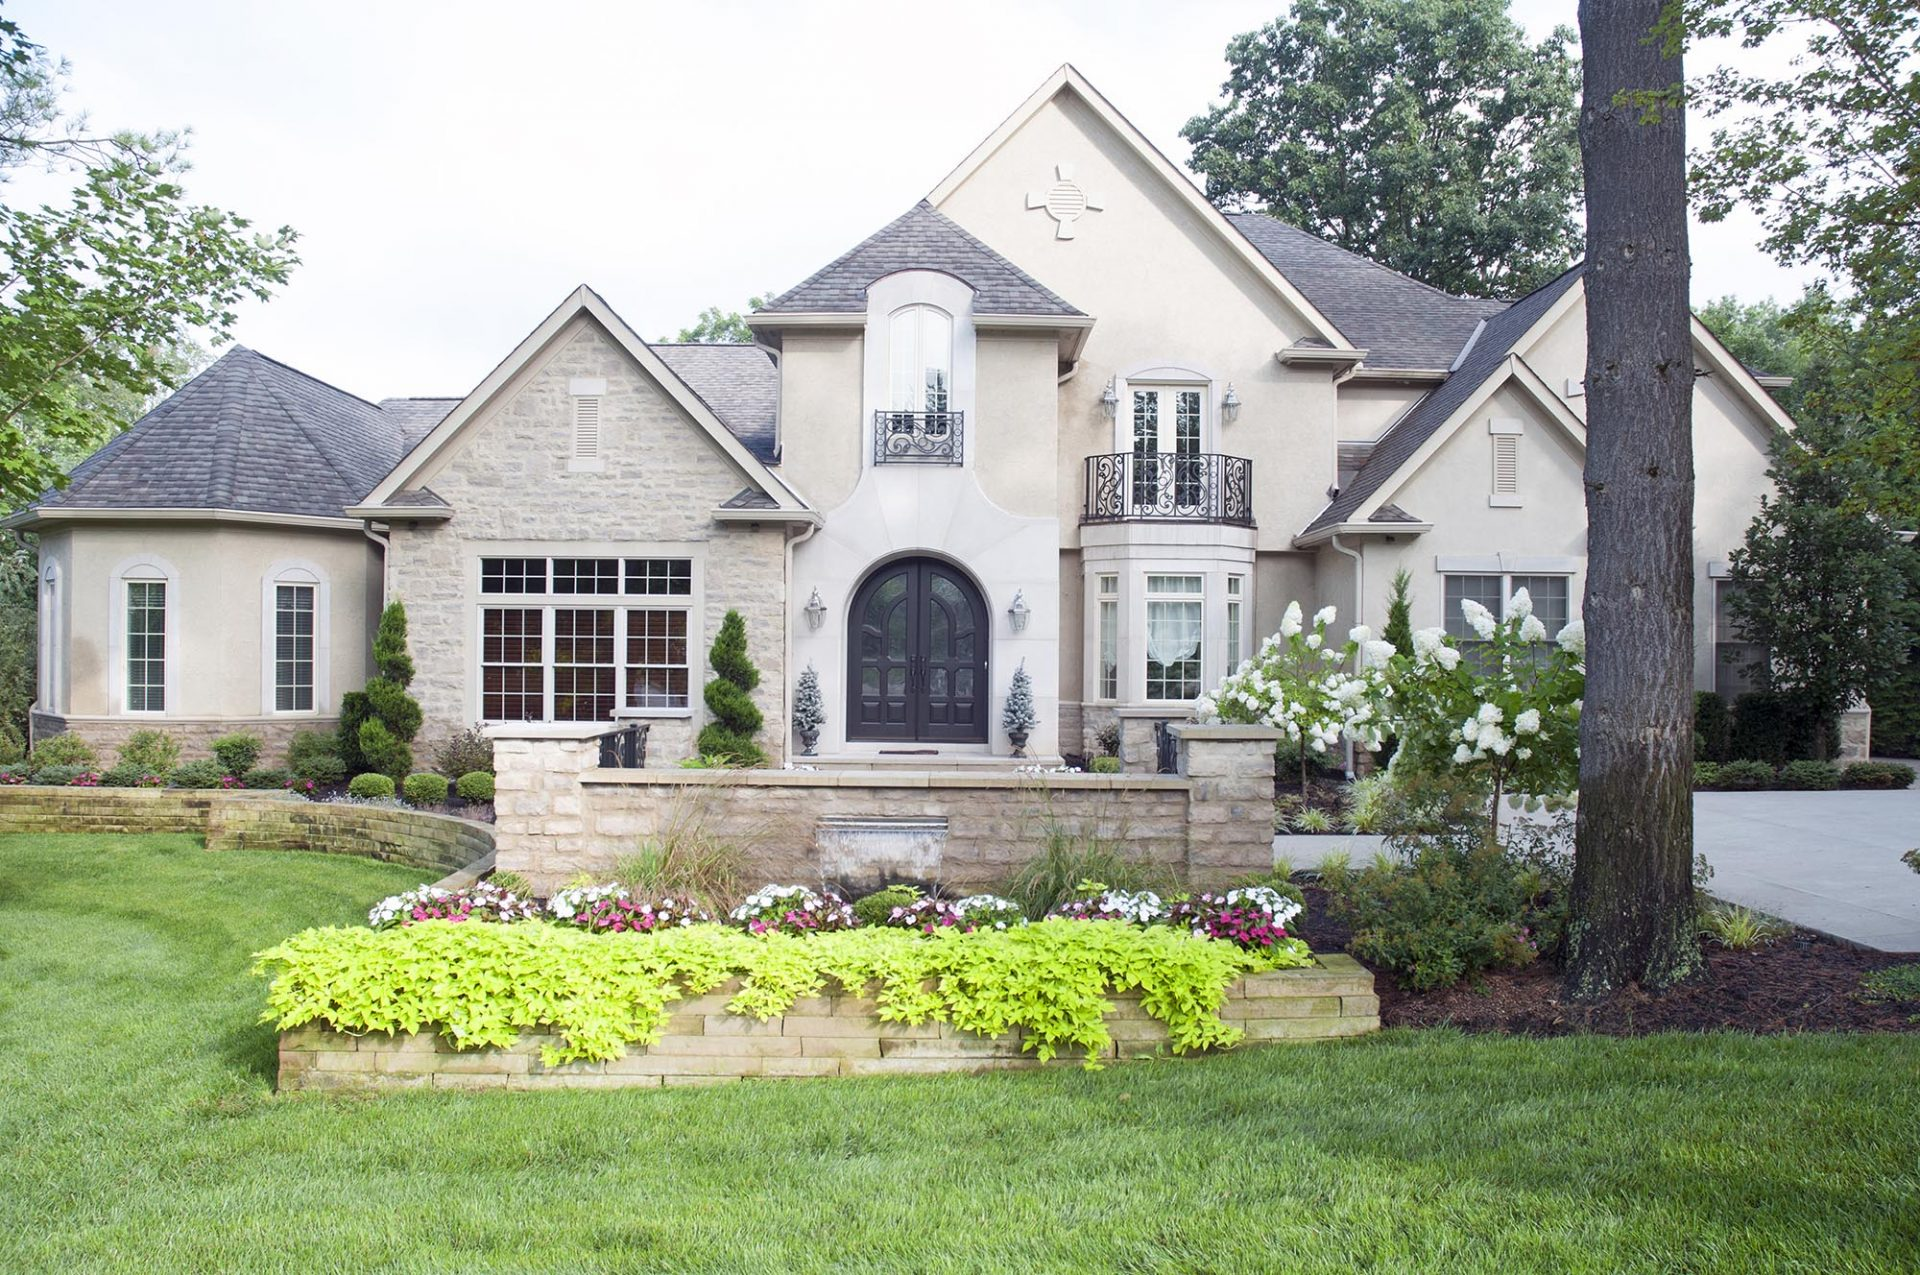 Exterior, Dublin, Dave Fox, Remodel, Landscape, stone, iron railing, French doors